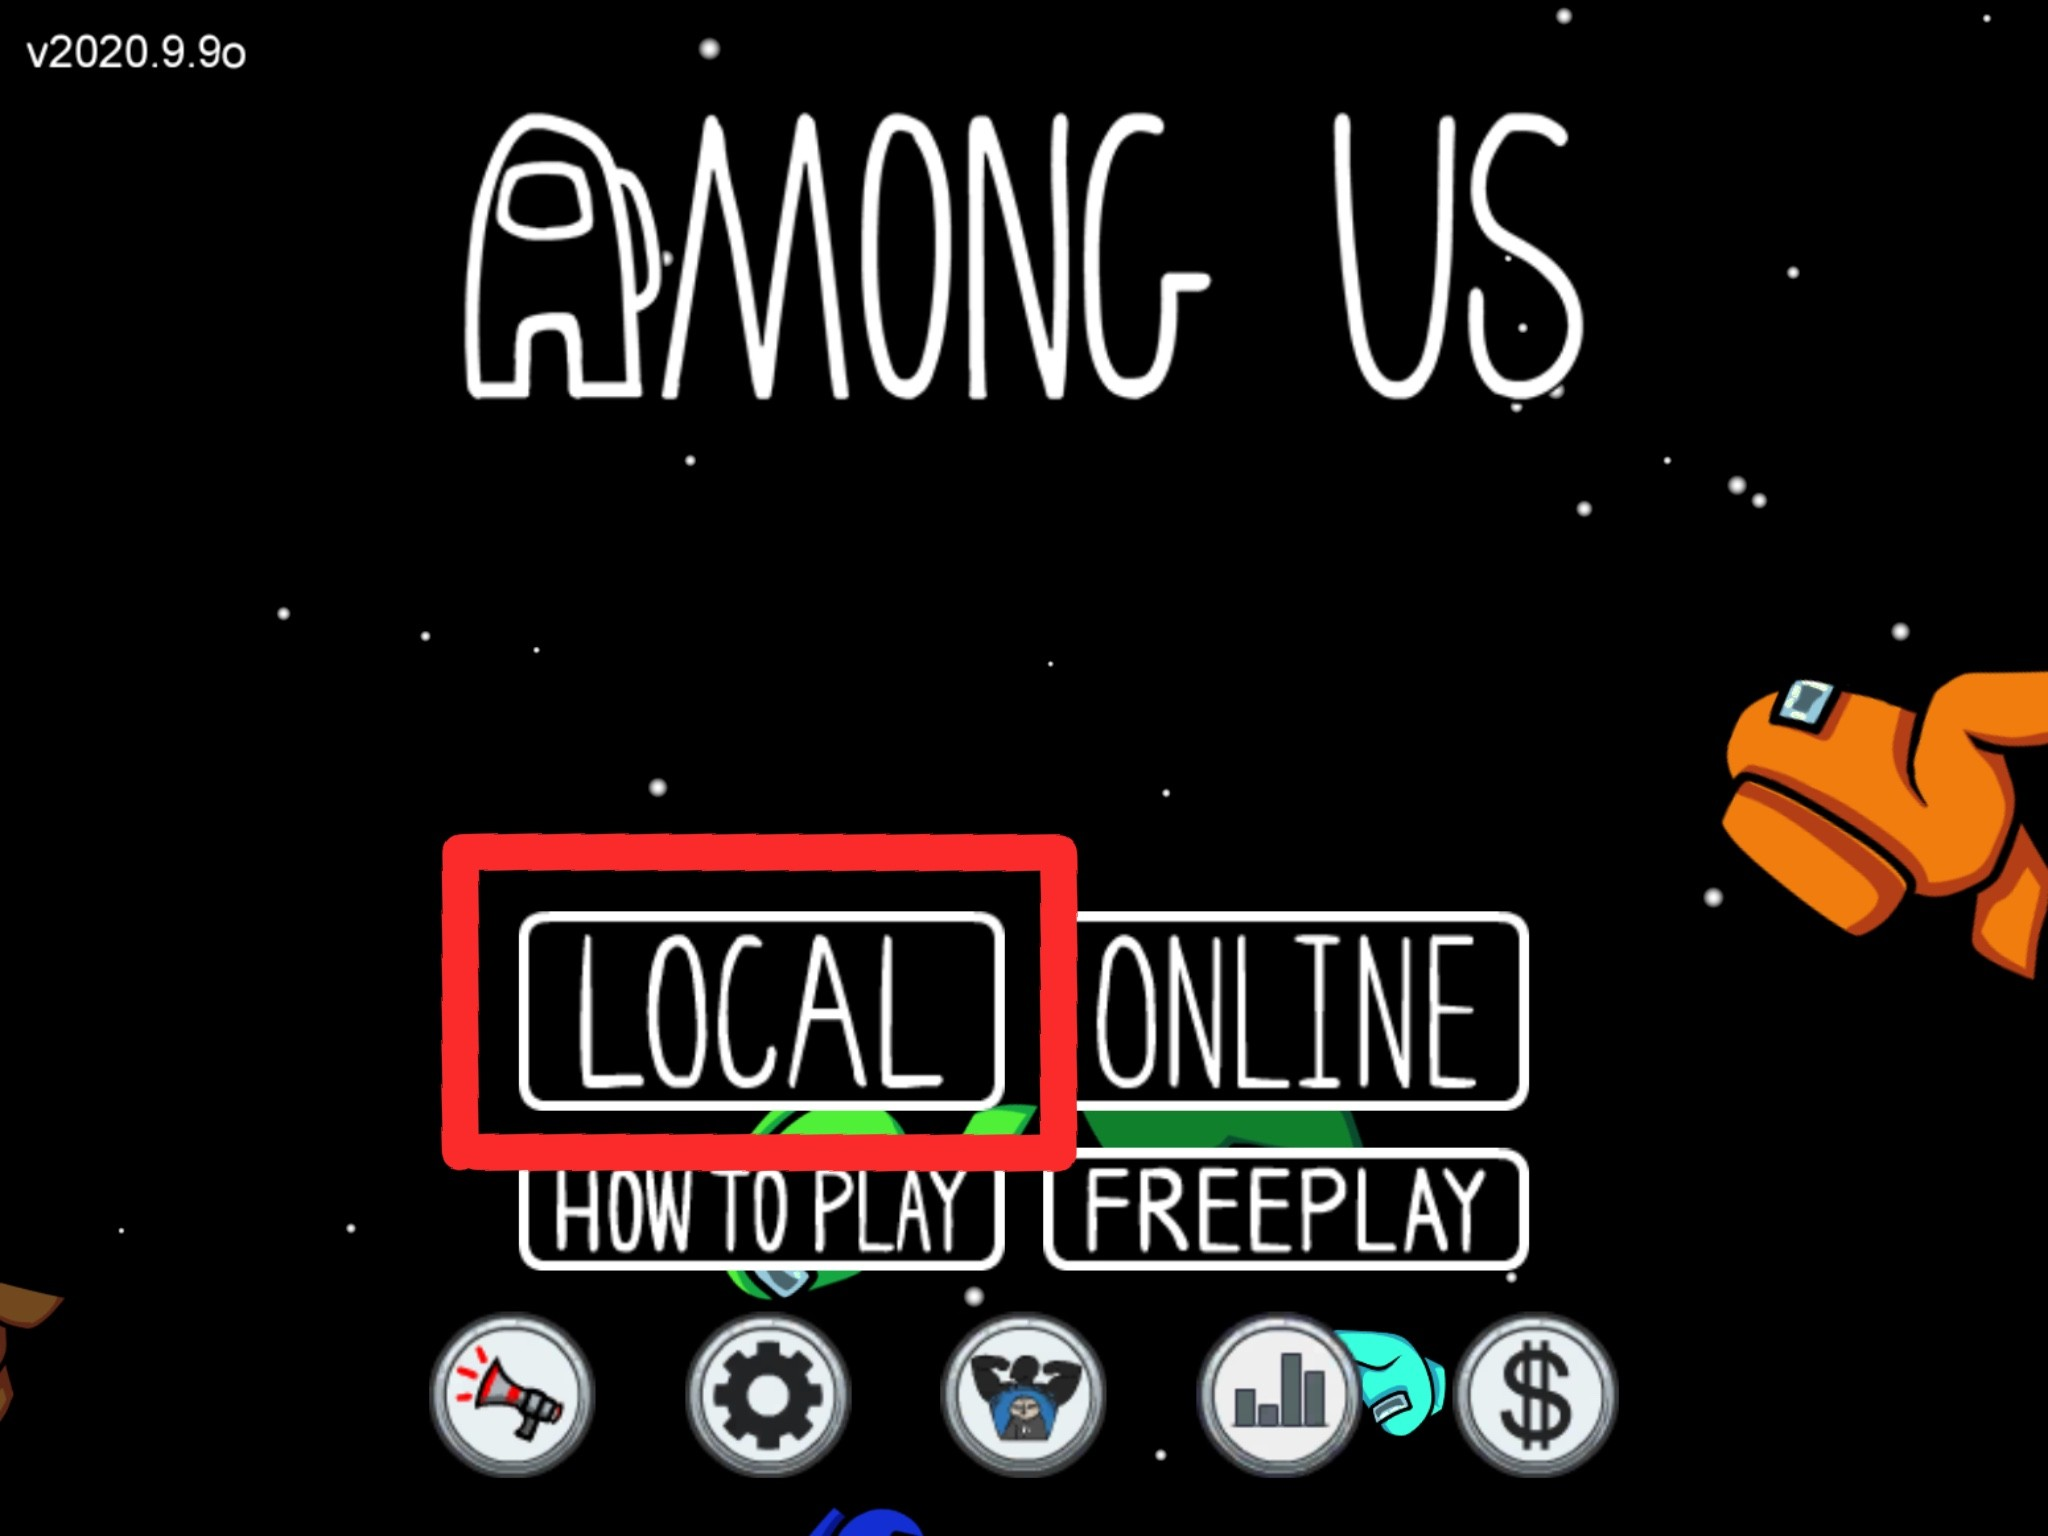 Among Us Local Online